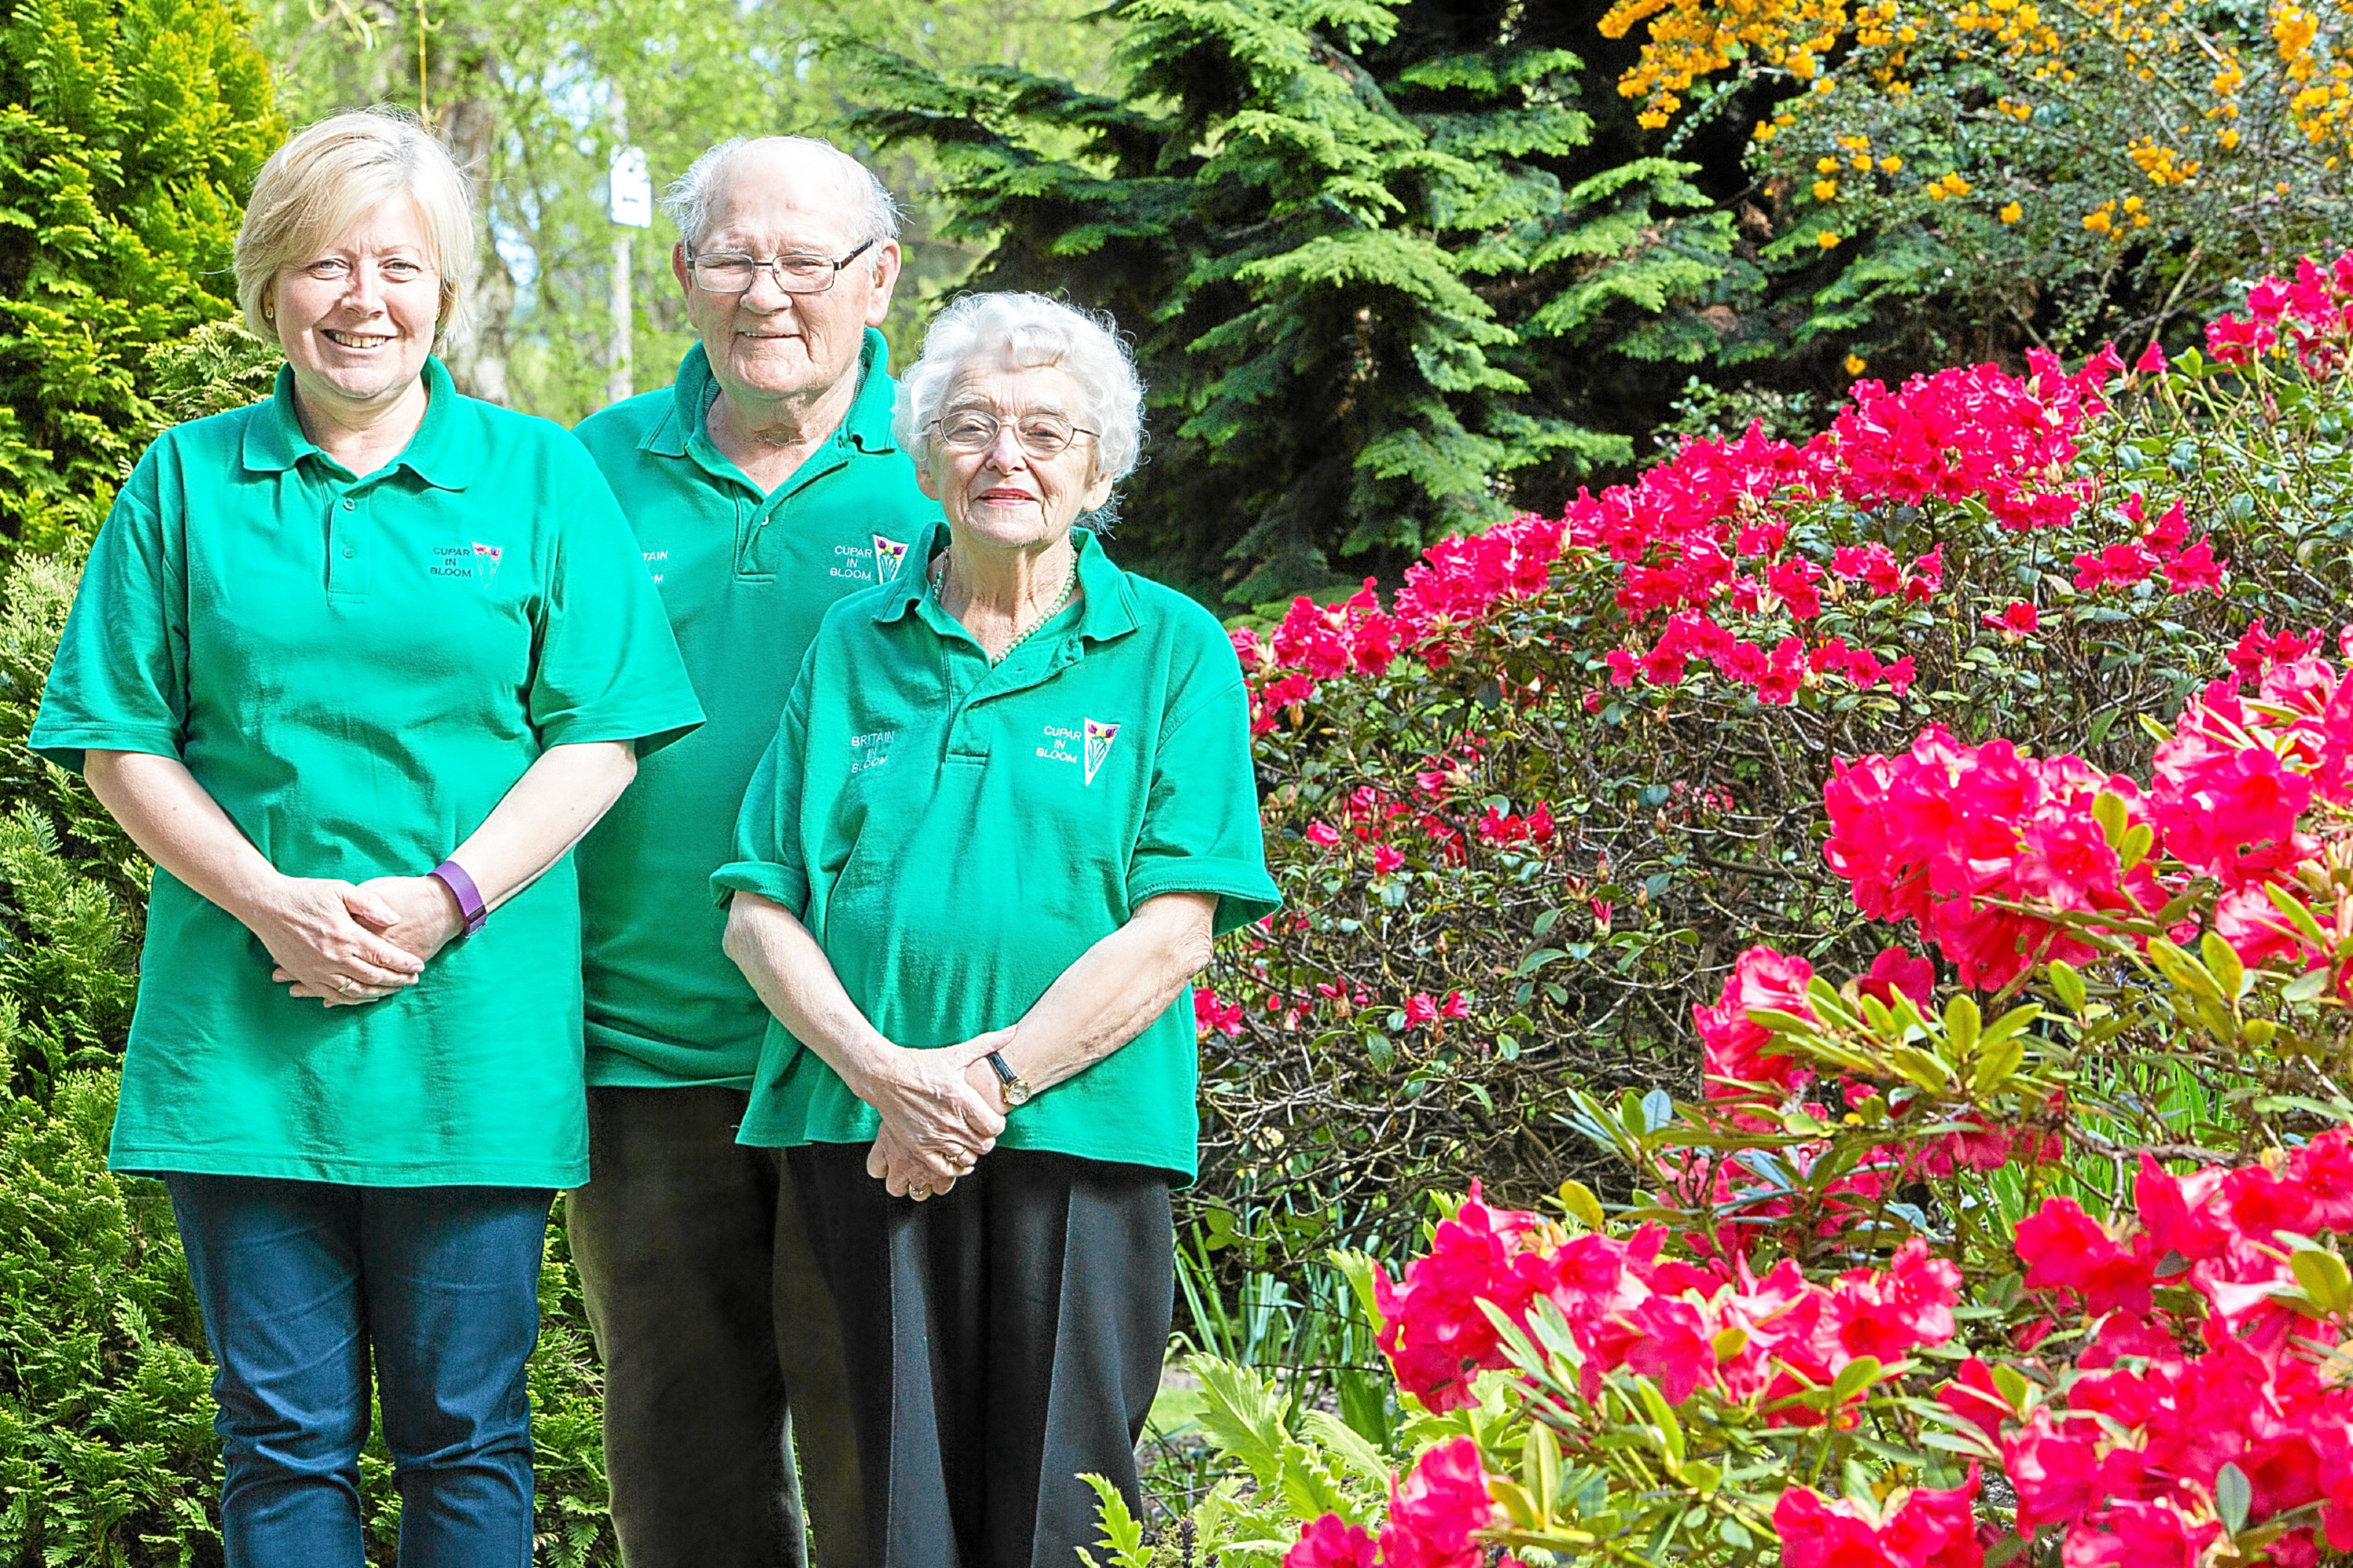 Mary Law (right), chair of Cupar in Bloom, wants to ensure the town stays blooming marvellous